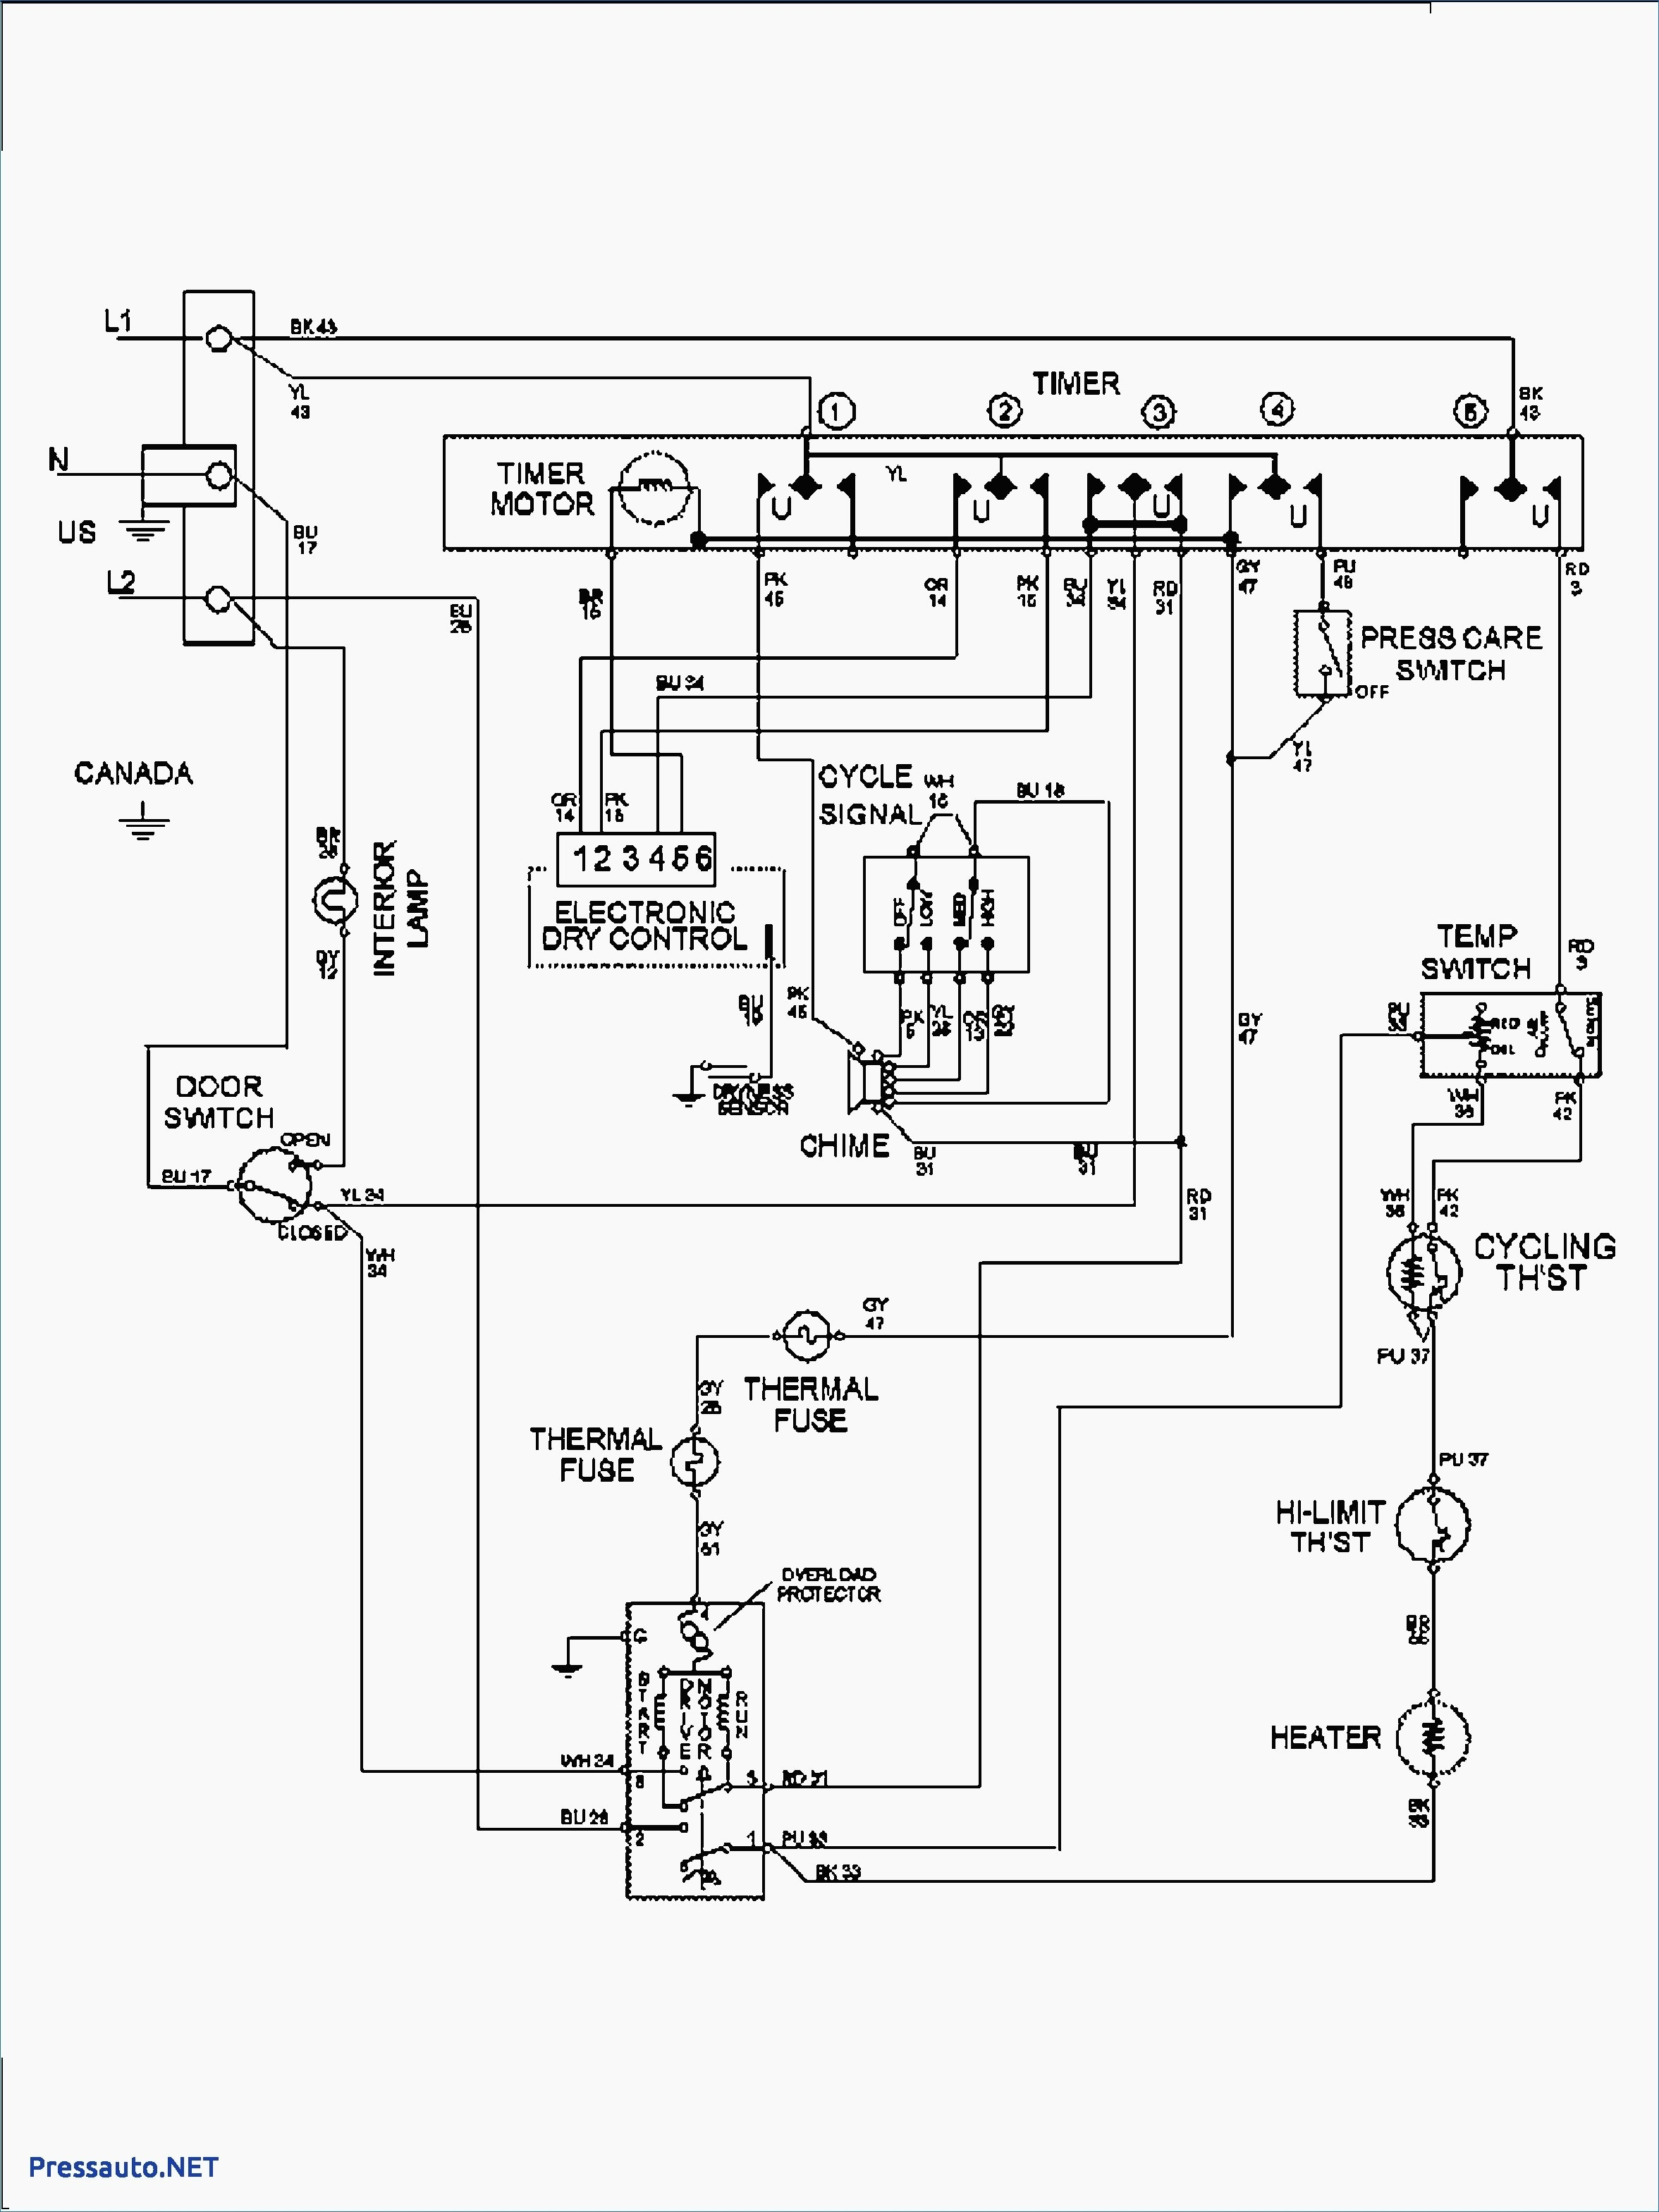 whirlpool dryer wiring schematic free wiring diagram whirlpool wiring diagram whirlpool wiring diagram whirlpool wiring diagram whirlpool wiring diagram